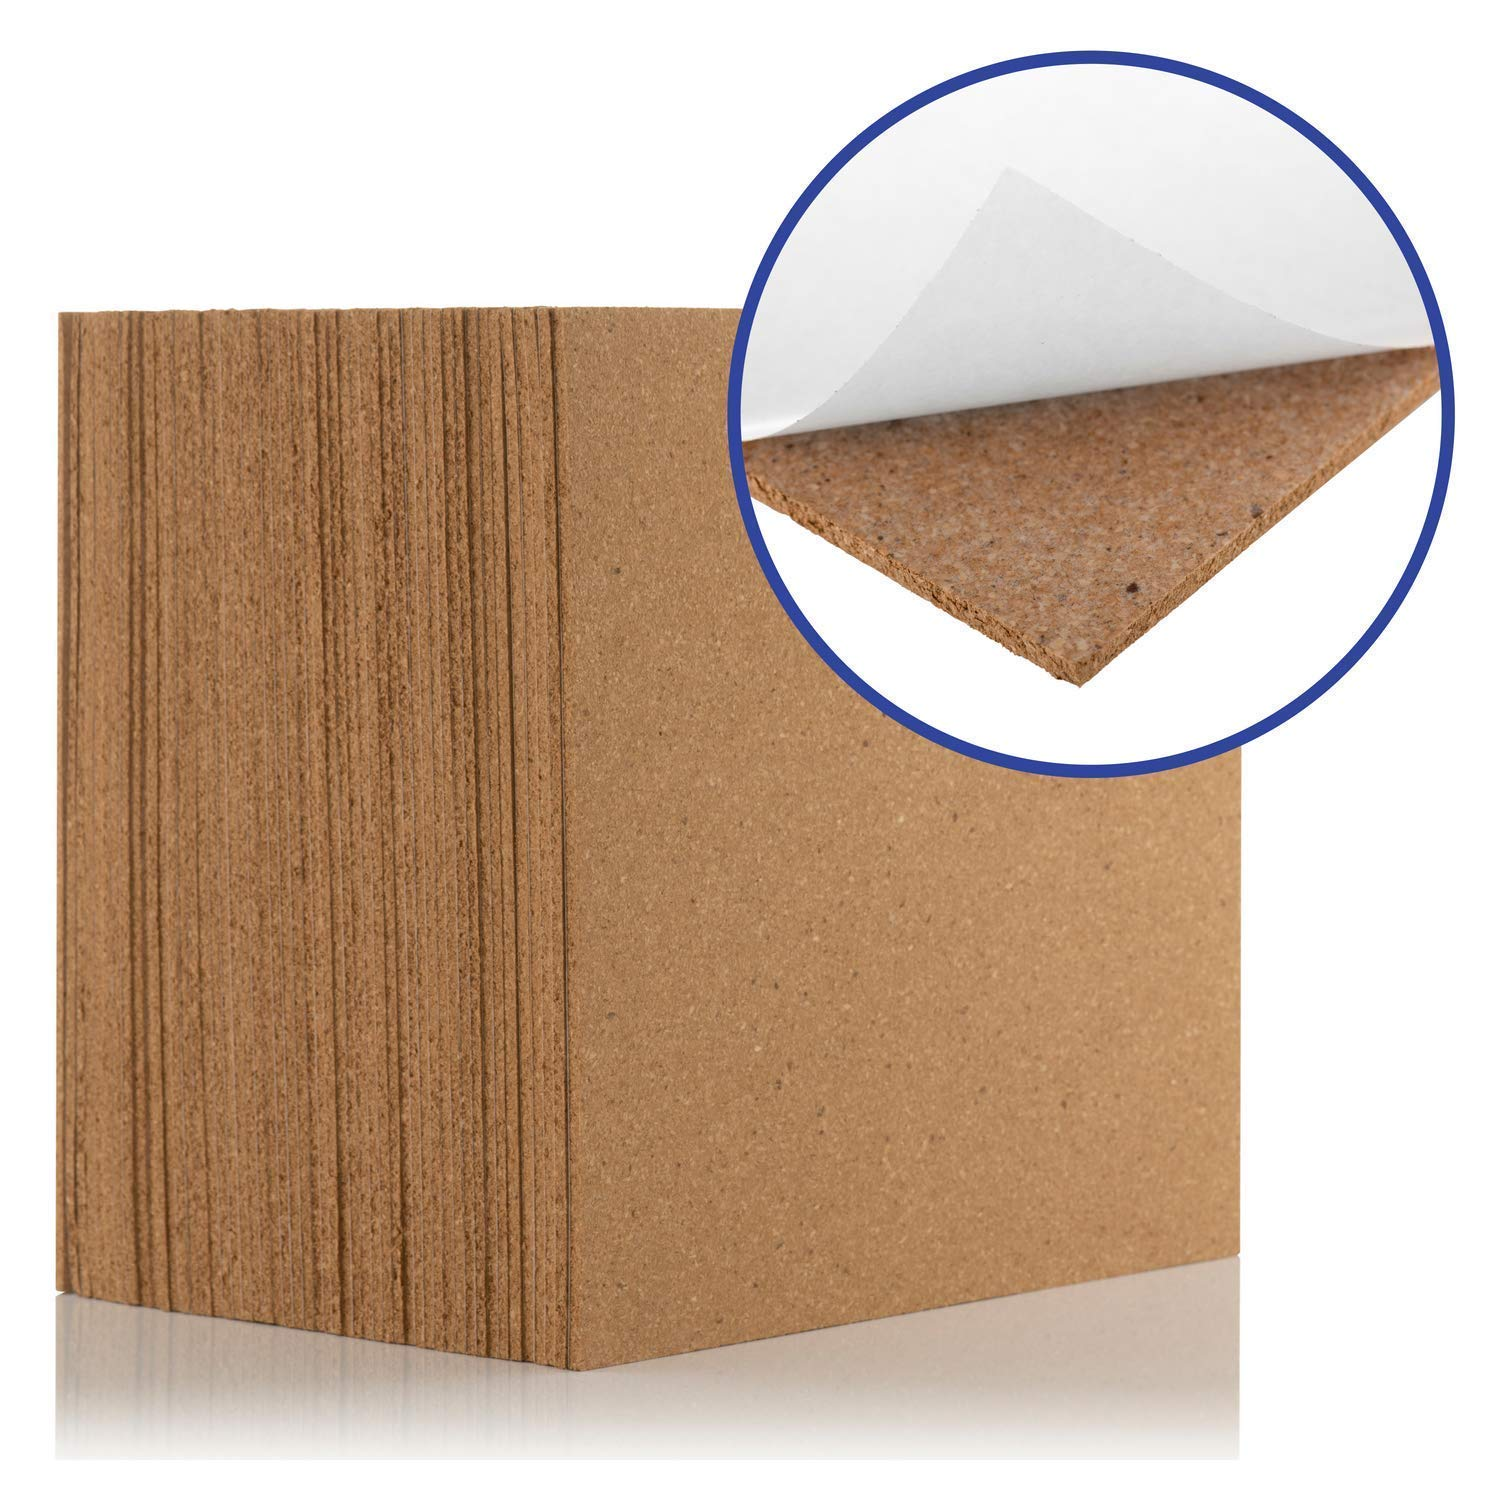 Cork Tiles Self-Adhesive (1.8 sqm coverage) - Natural 300x300mm, Tiles | Great for Floors, Walls, DIY, Pin Boards & Craft Projects | Acts as Sound Proofing & Insulation (Pack of 20) Boulder Developments Ltd BHFP-1351-20